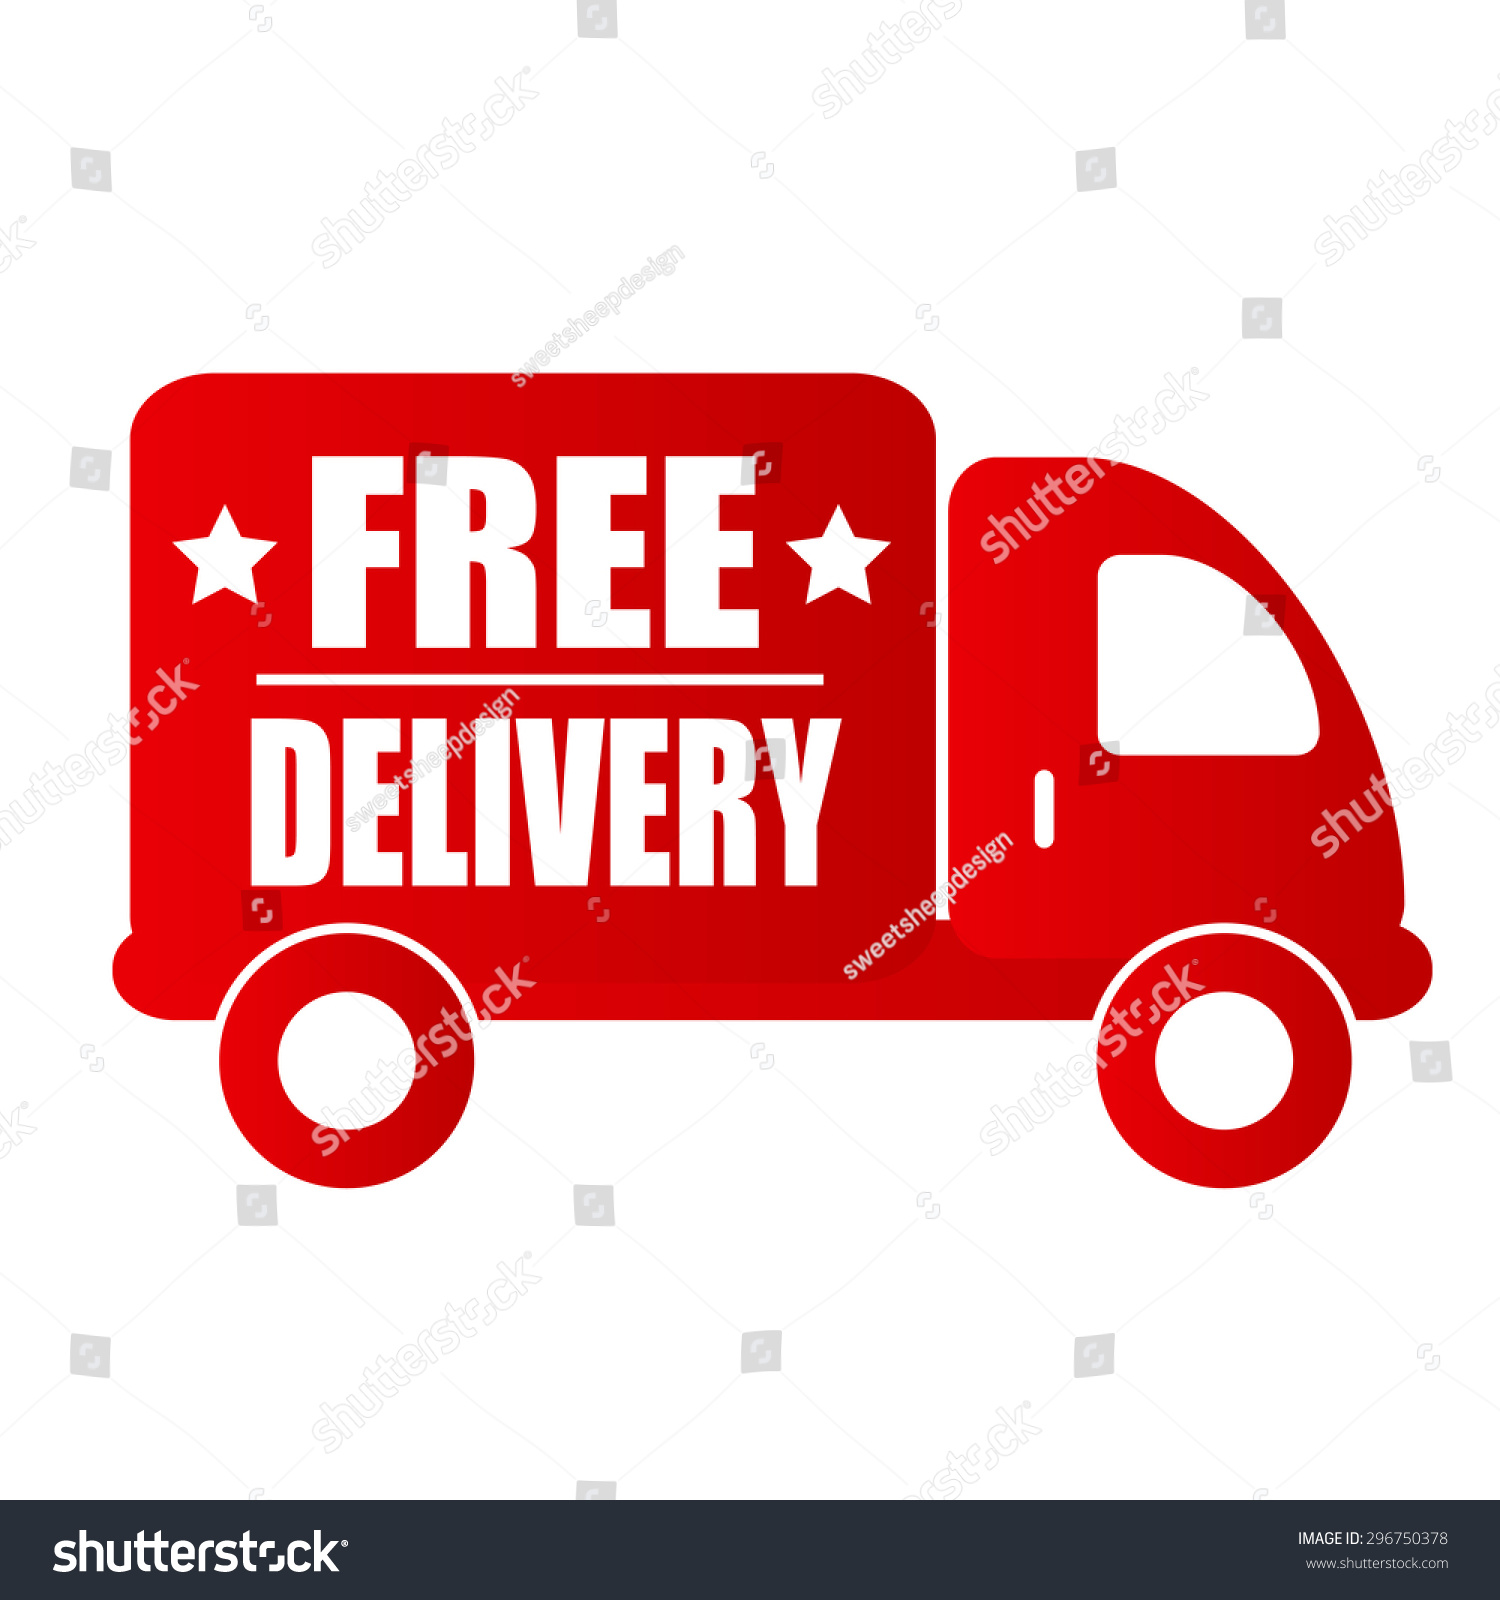 Free Delivery Text Red Car Stock Vector Royalty Free 296750378